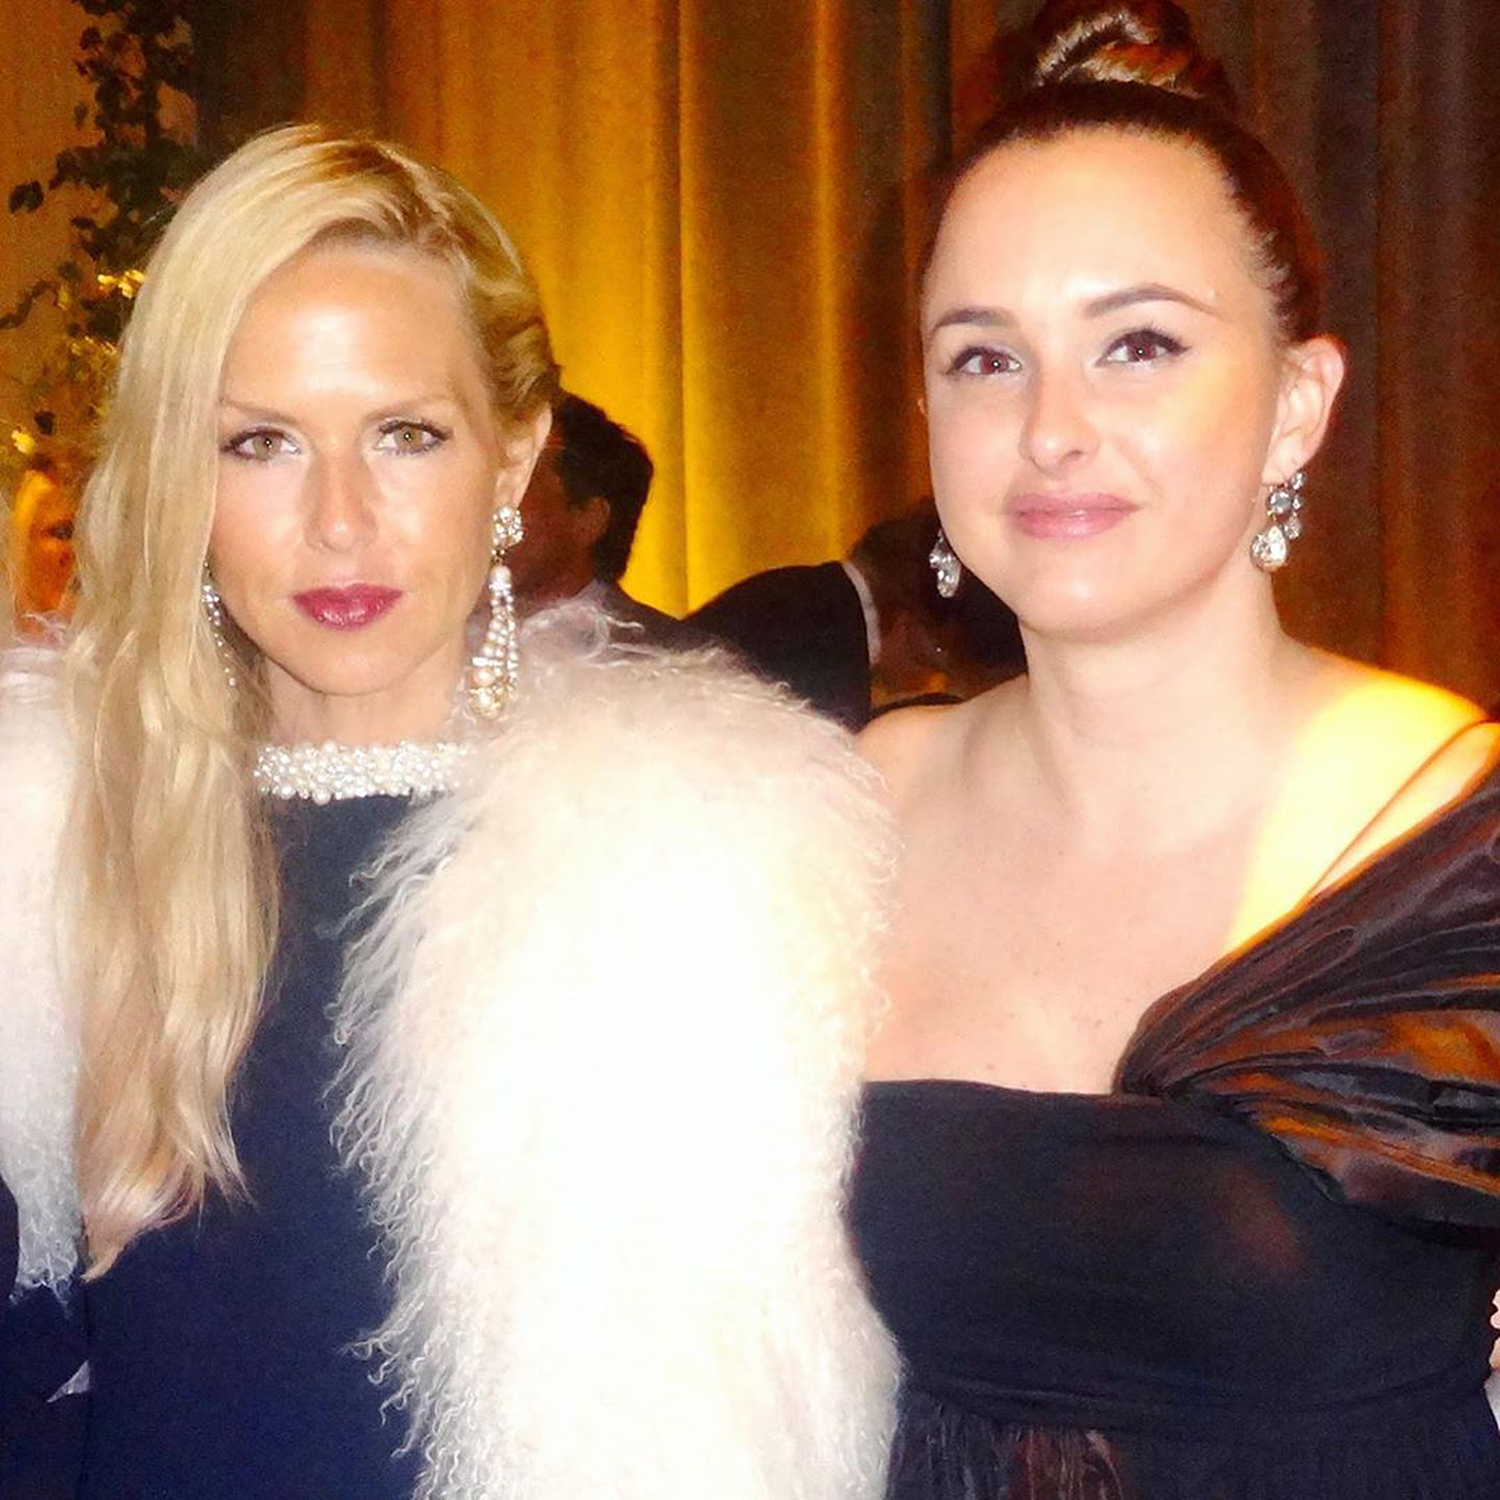 Hilary Tish and Rachel Zoe